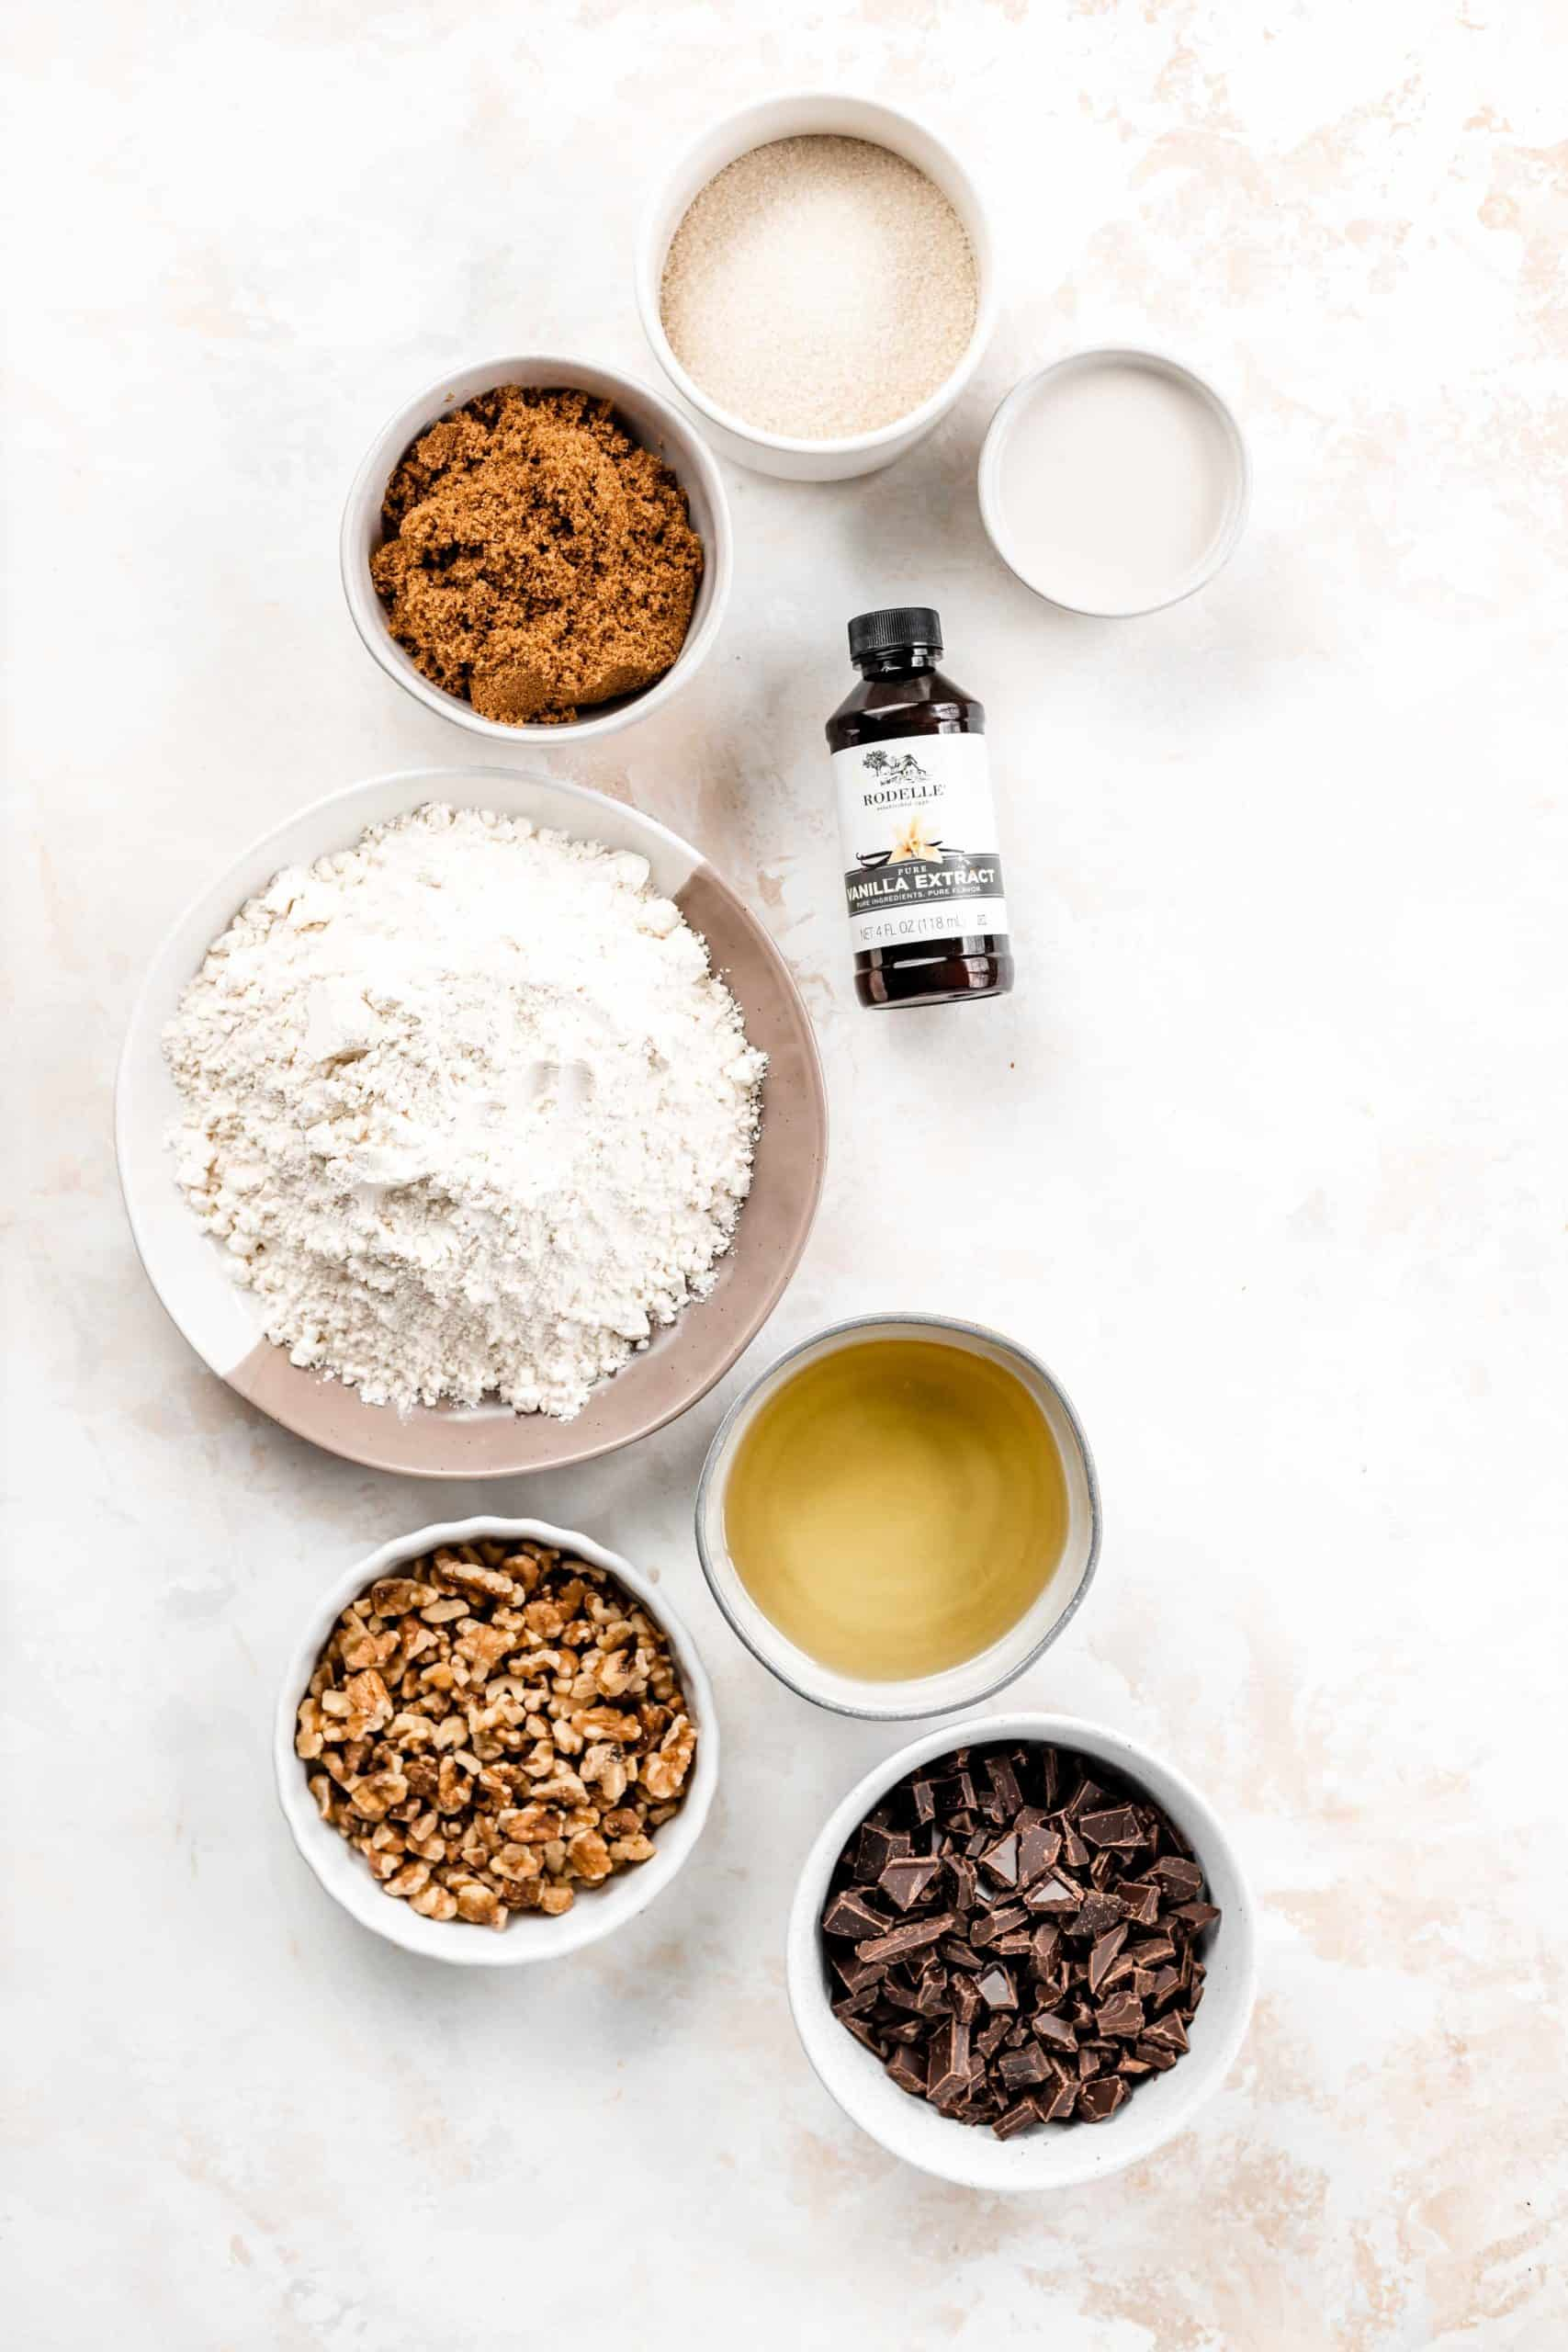 vegan chocolate chip cookie ingredients